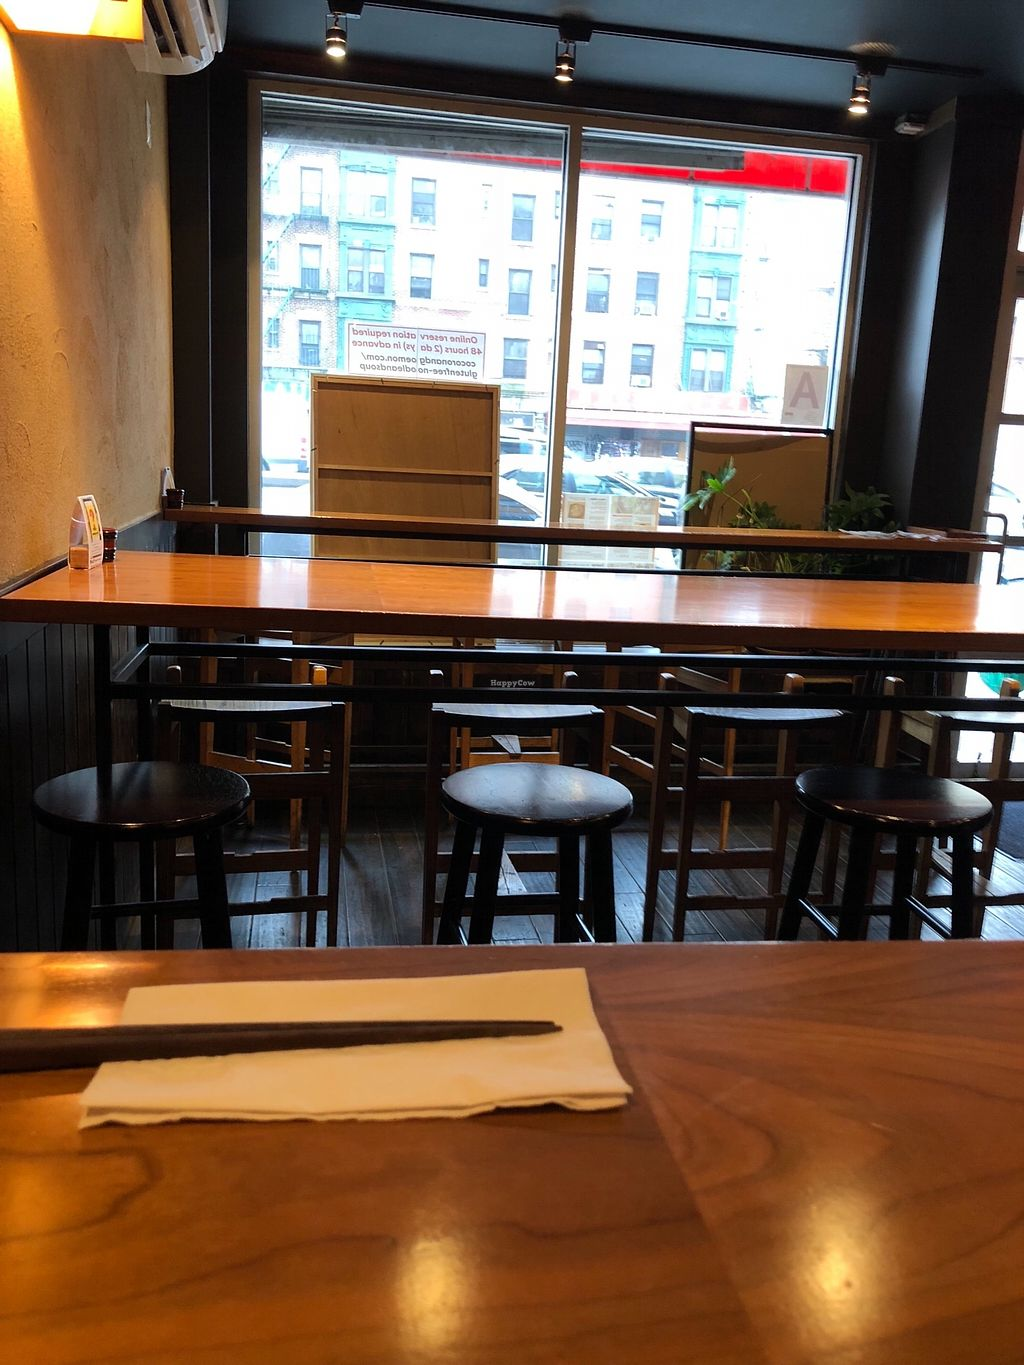 """Photo of Cocoron  by <a href=""""/members/profile/Sierra7"""">Sierra7</a> <br/>Inside of restaurant  <br/> April 5, 2018  - <a href='/contact/abuse/image/116765/381075'>Report</a>"""